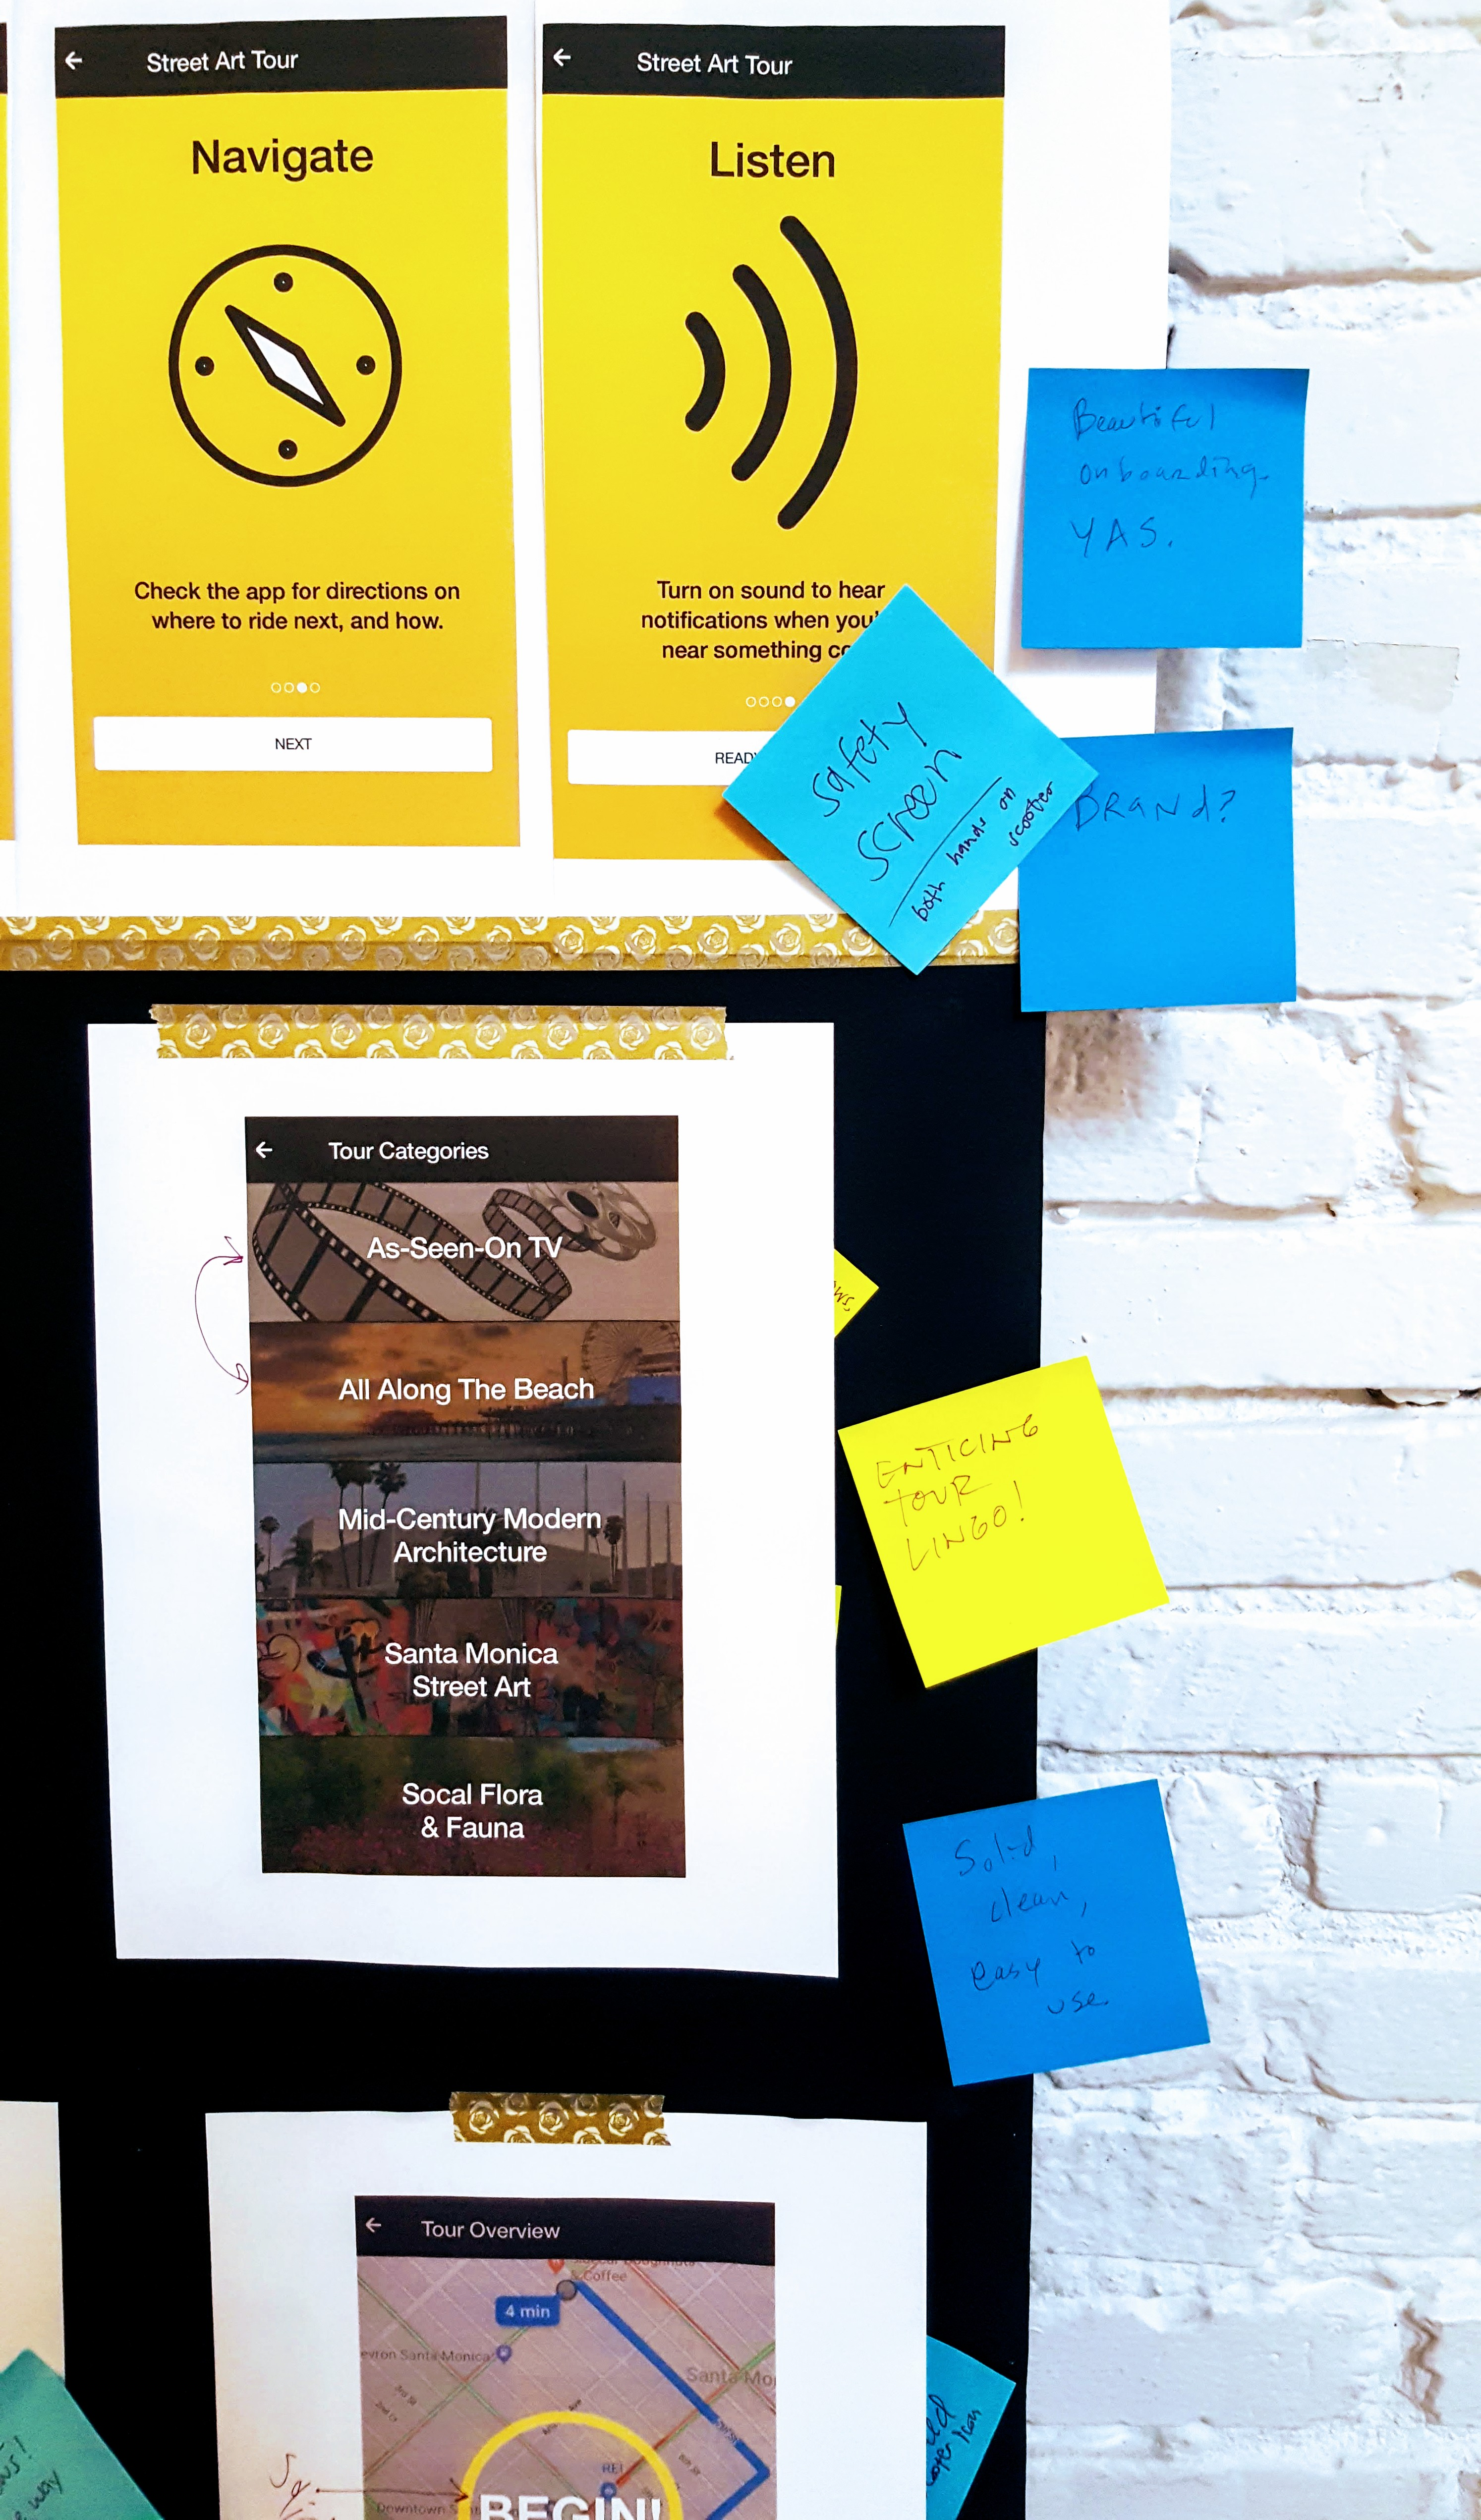 Full-color mockup print-outs taped to a black board and decorated with post-its commenting on the mockup design